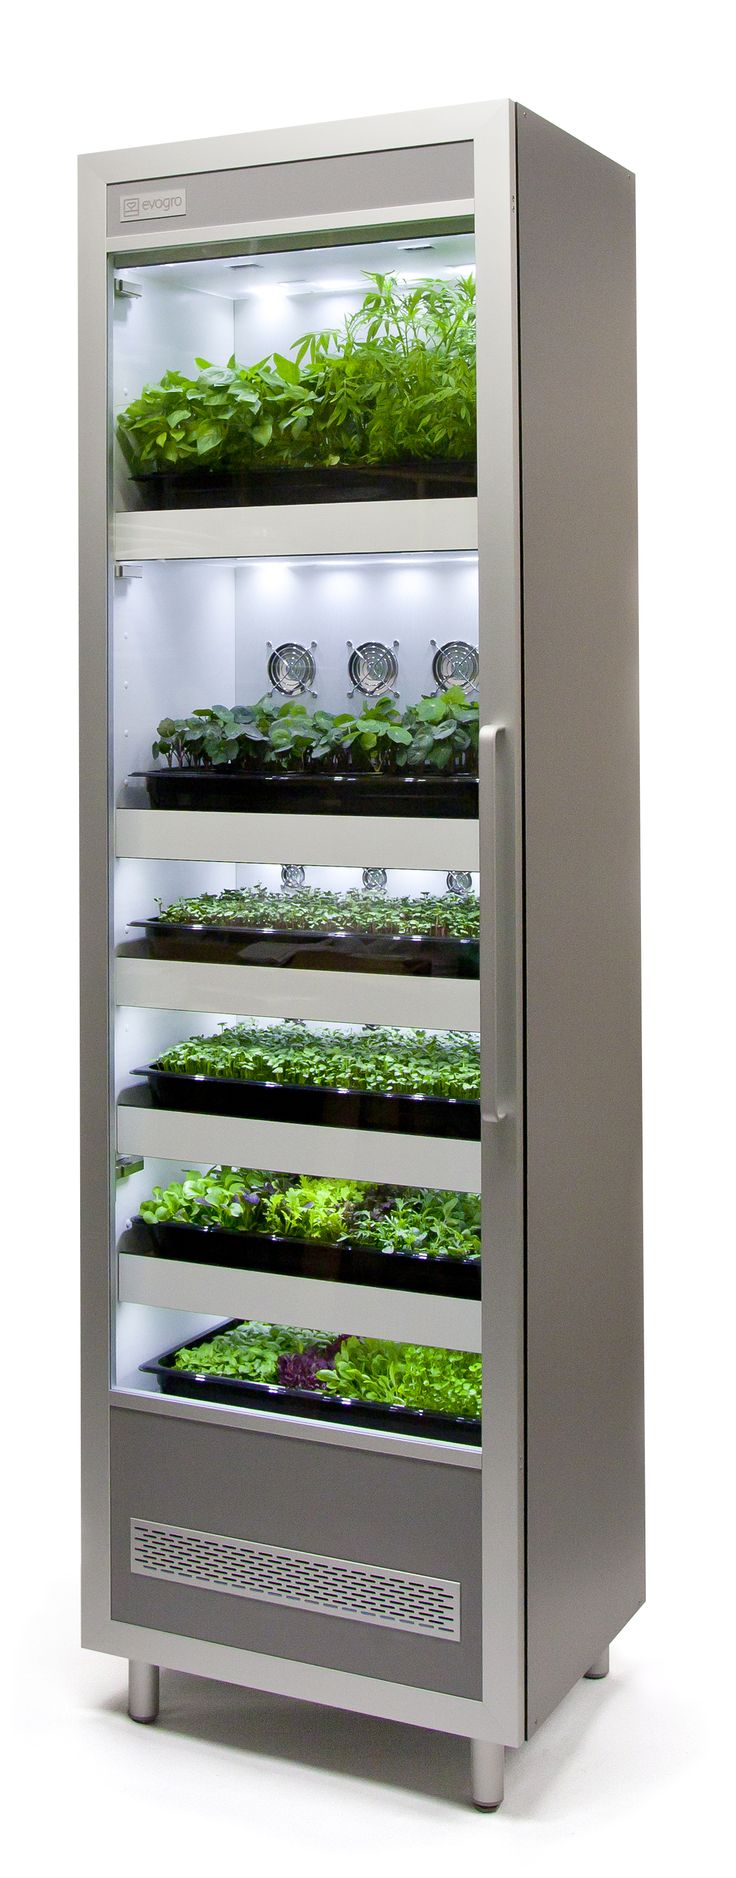 397 best images about garden indoor on pinterest for Best growing medium for microgreens